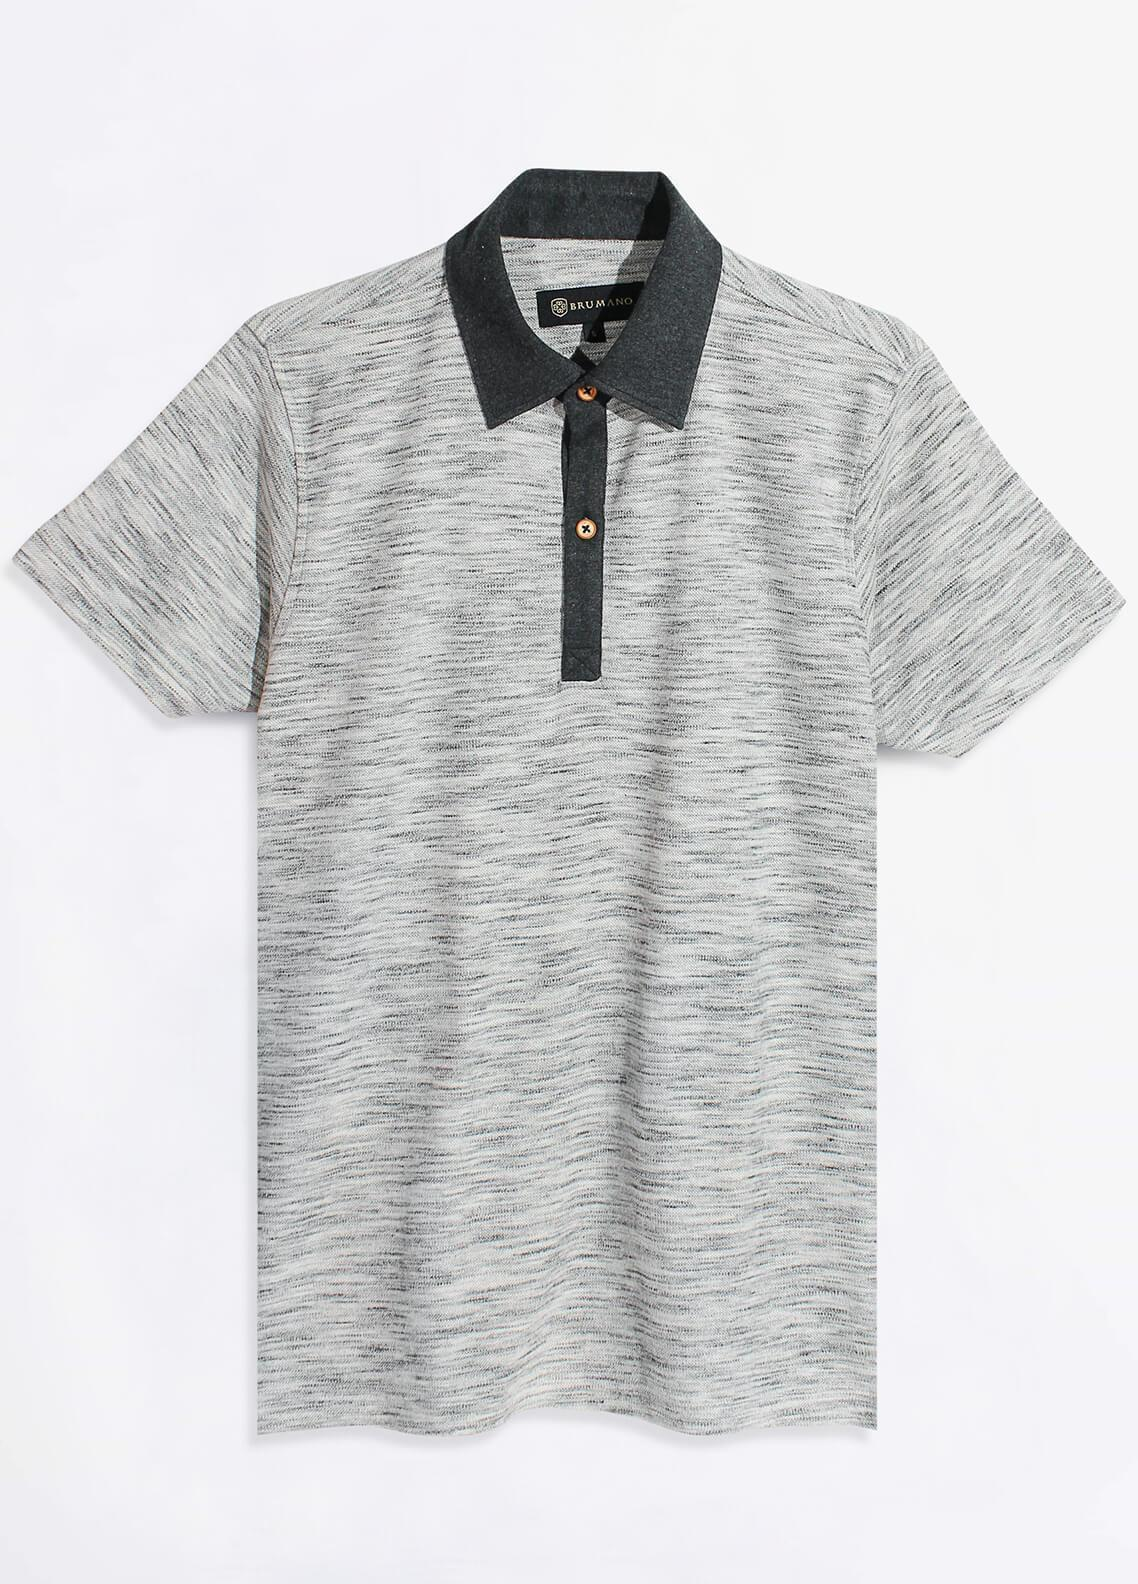 Brumano Cotton Polo Men Shirts - Grey BRM-103